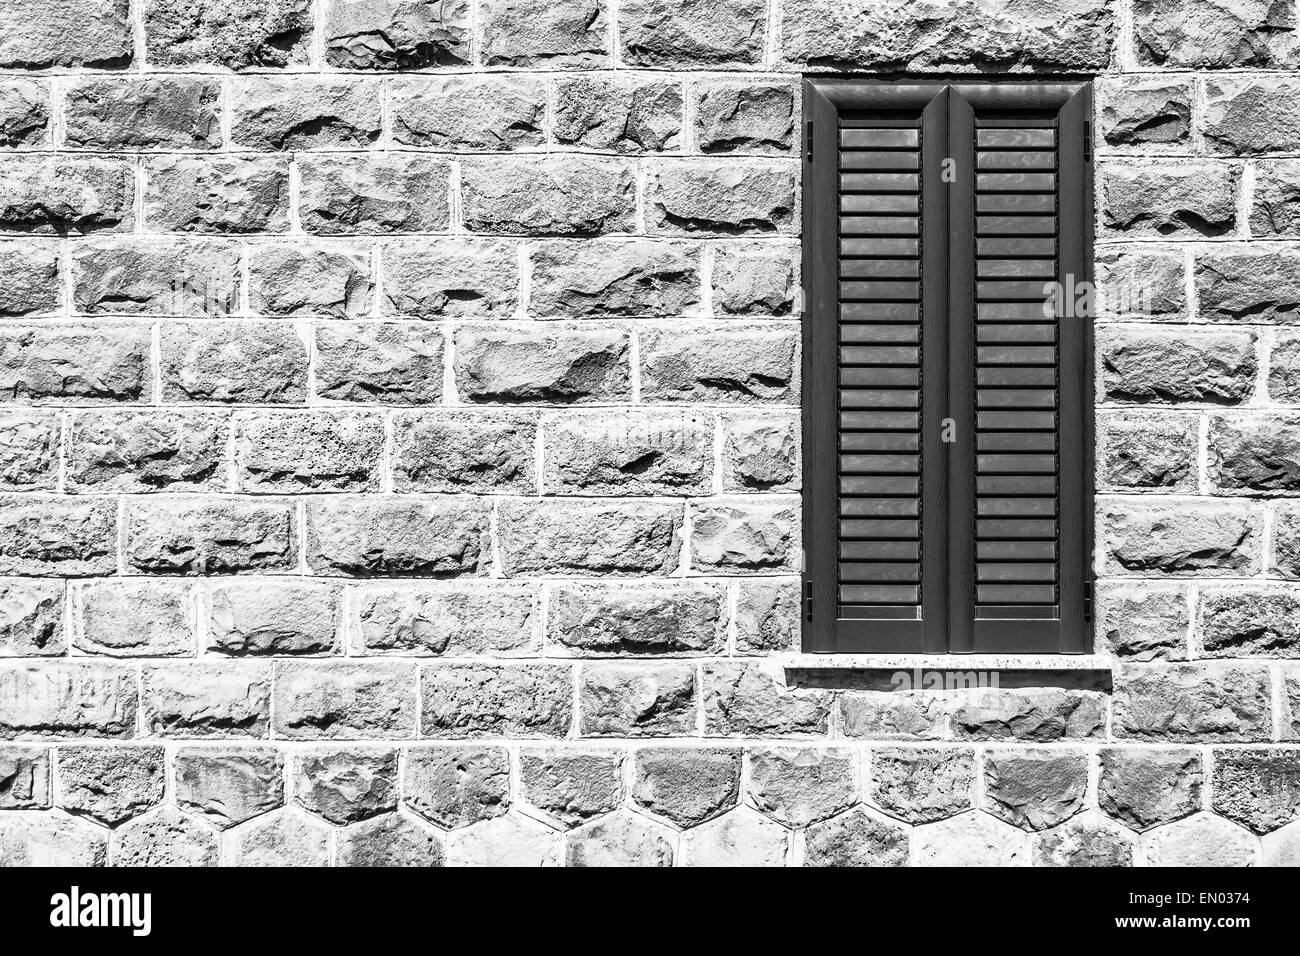 Window on the wall of basalt . - Stock Image